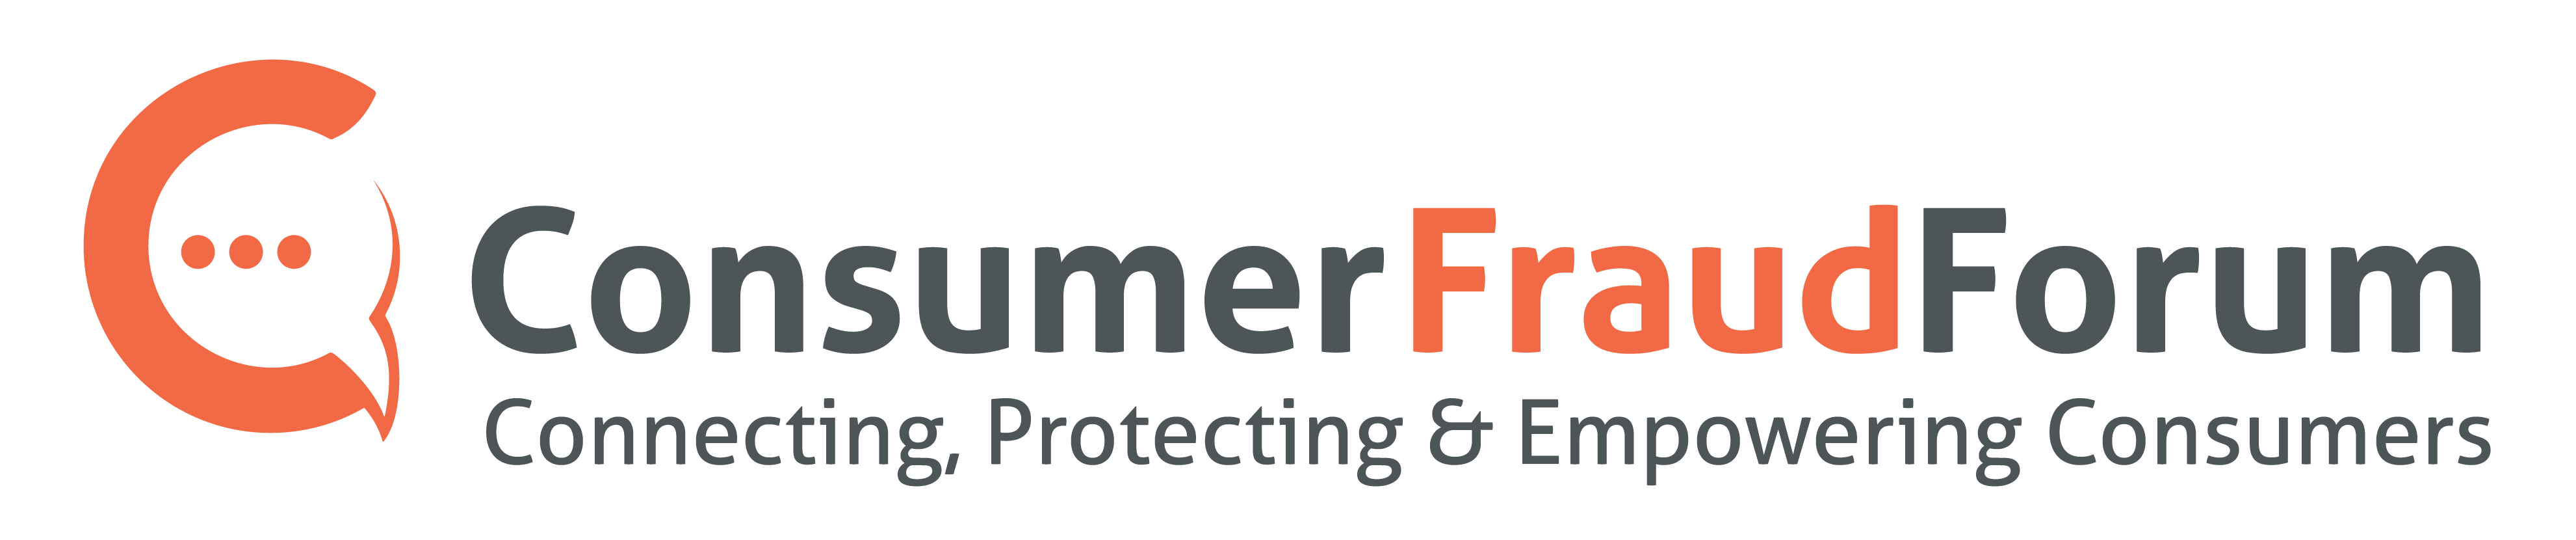 Consumer Fraud Forum